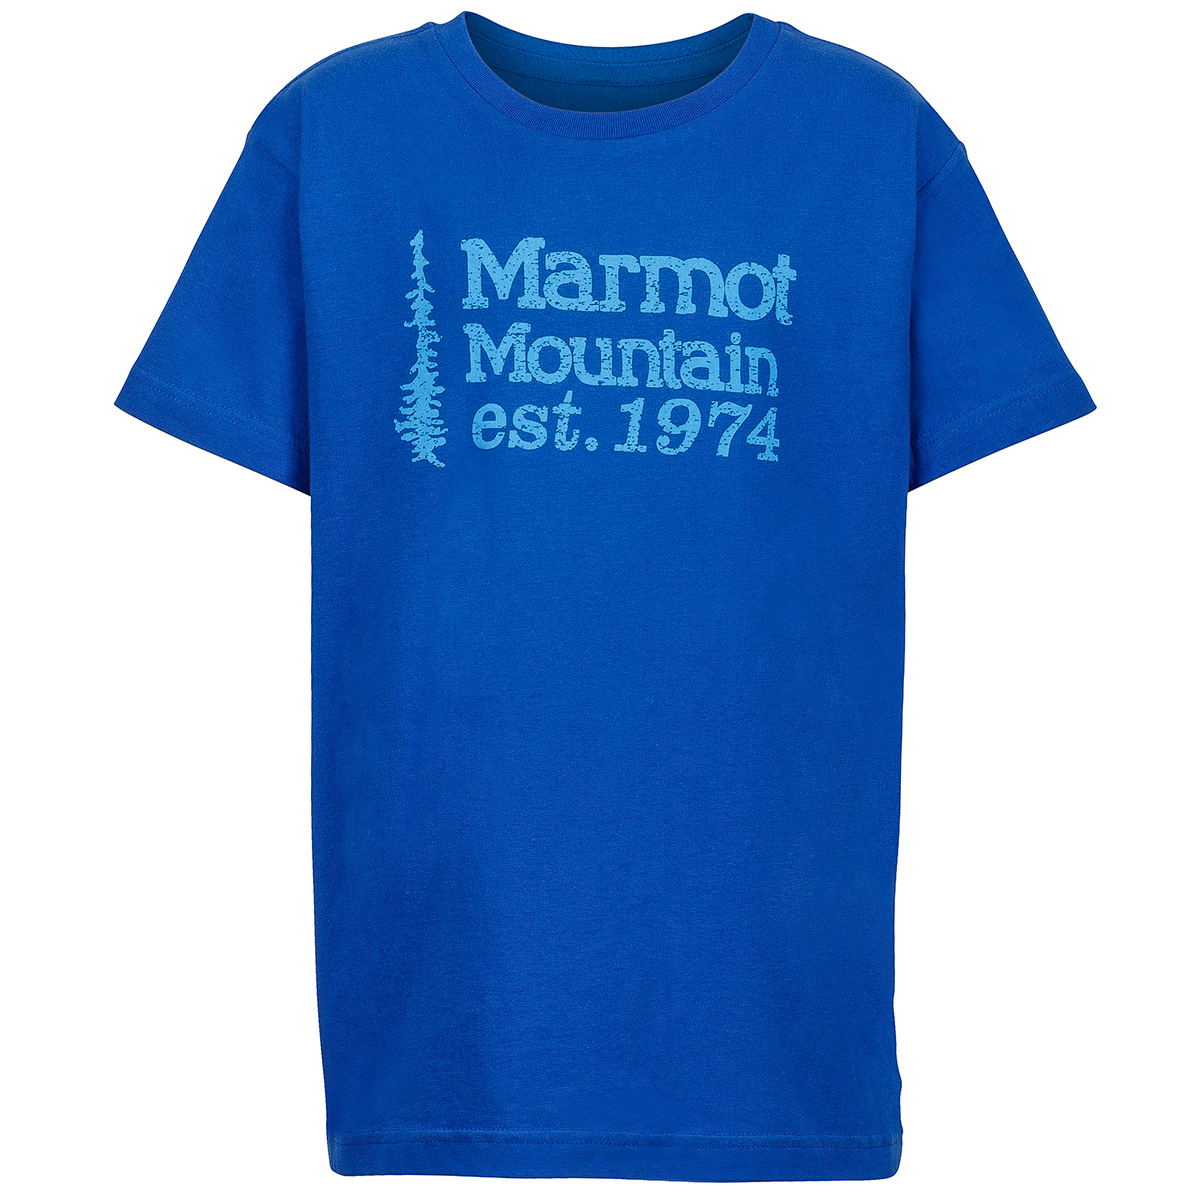 Marmot Boys' 74 Graphic Tee - Blue, S